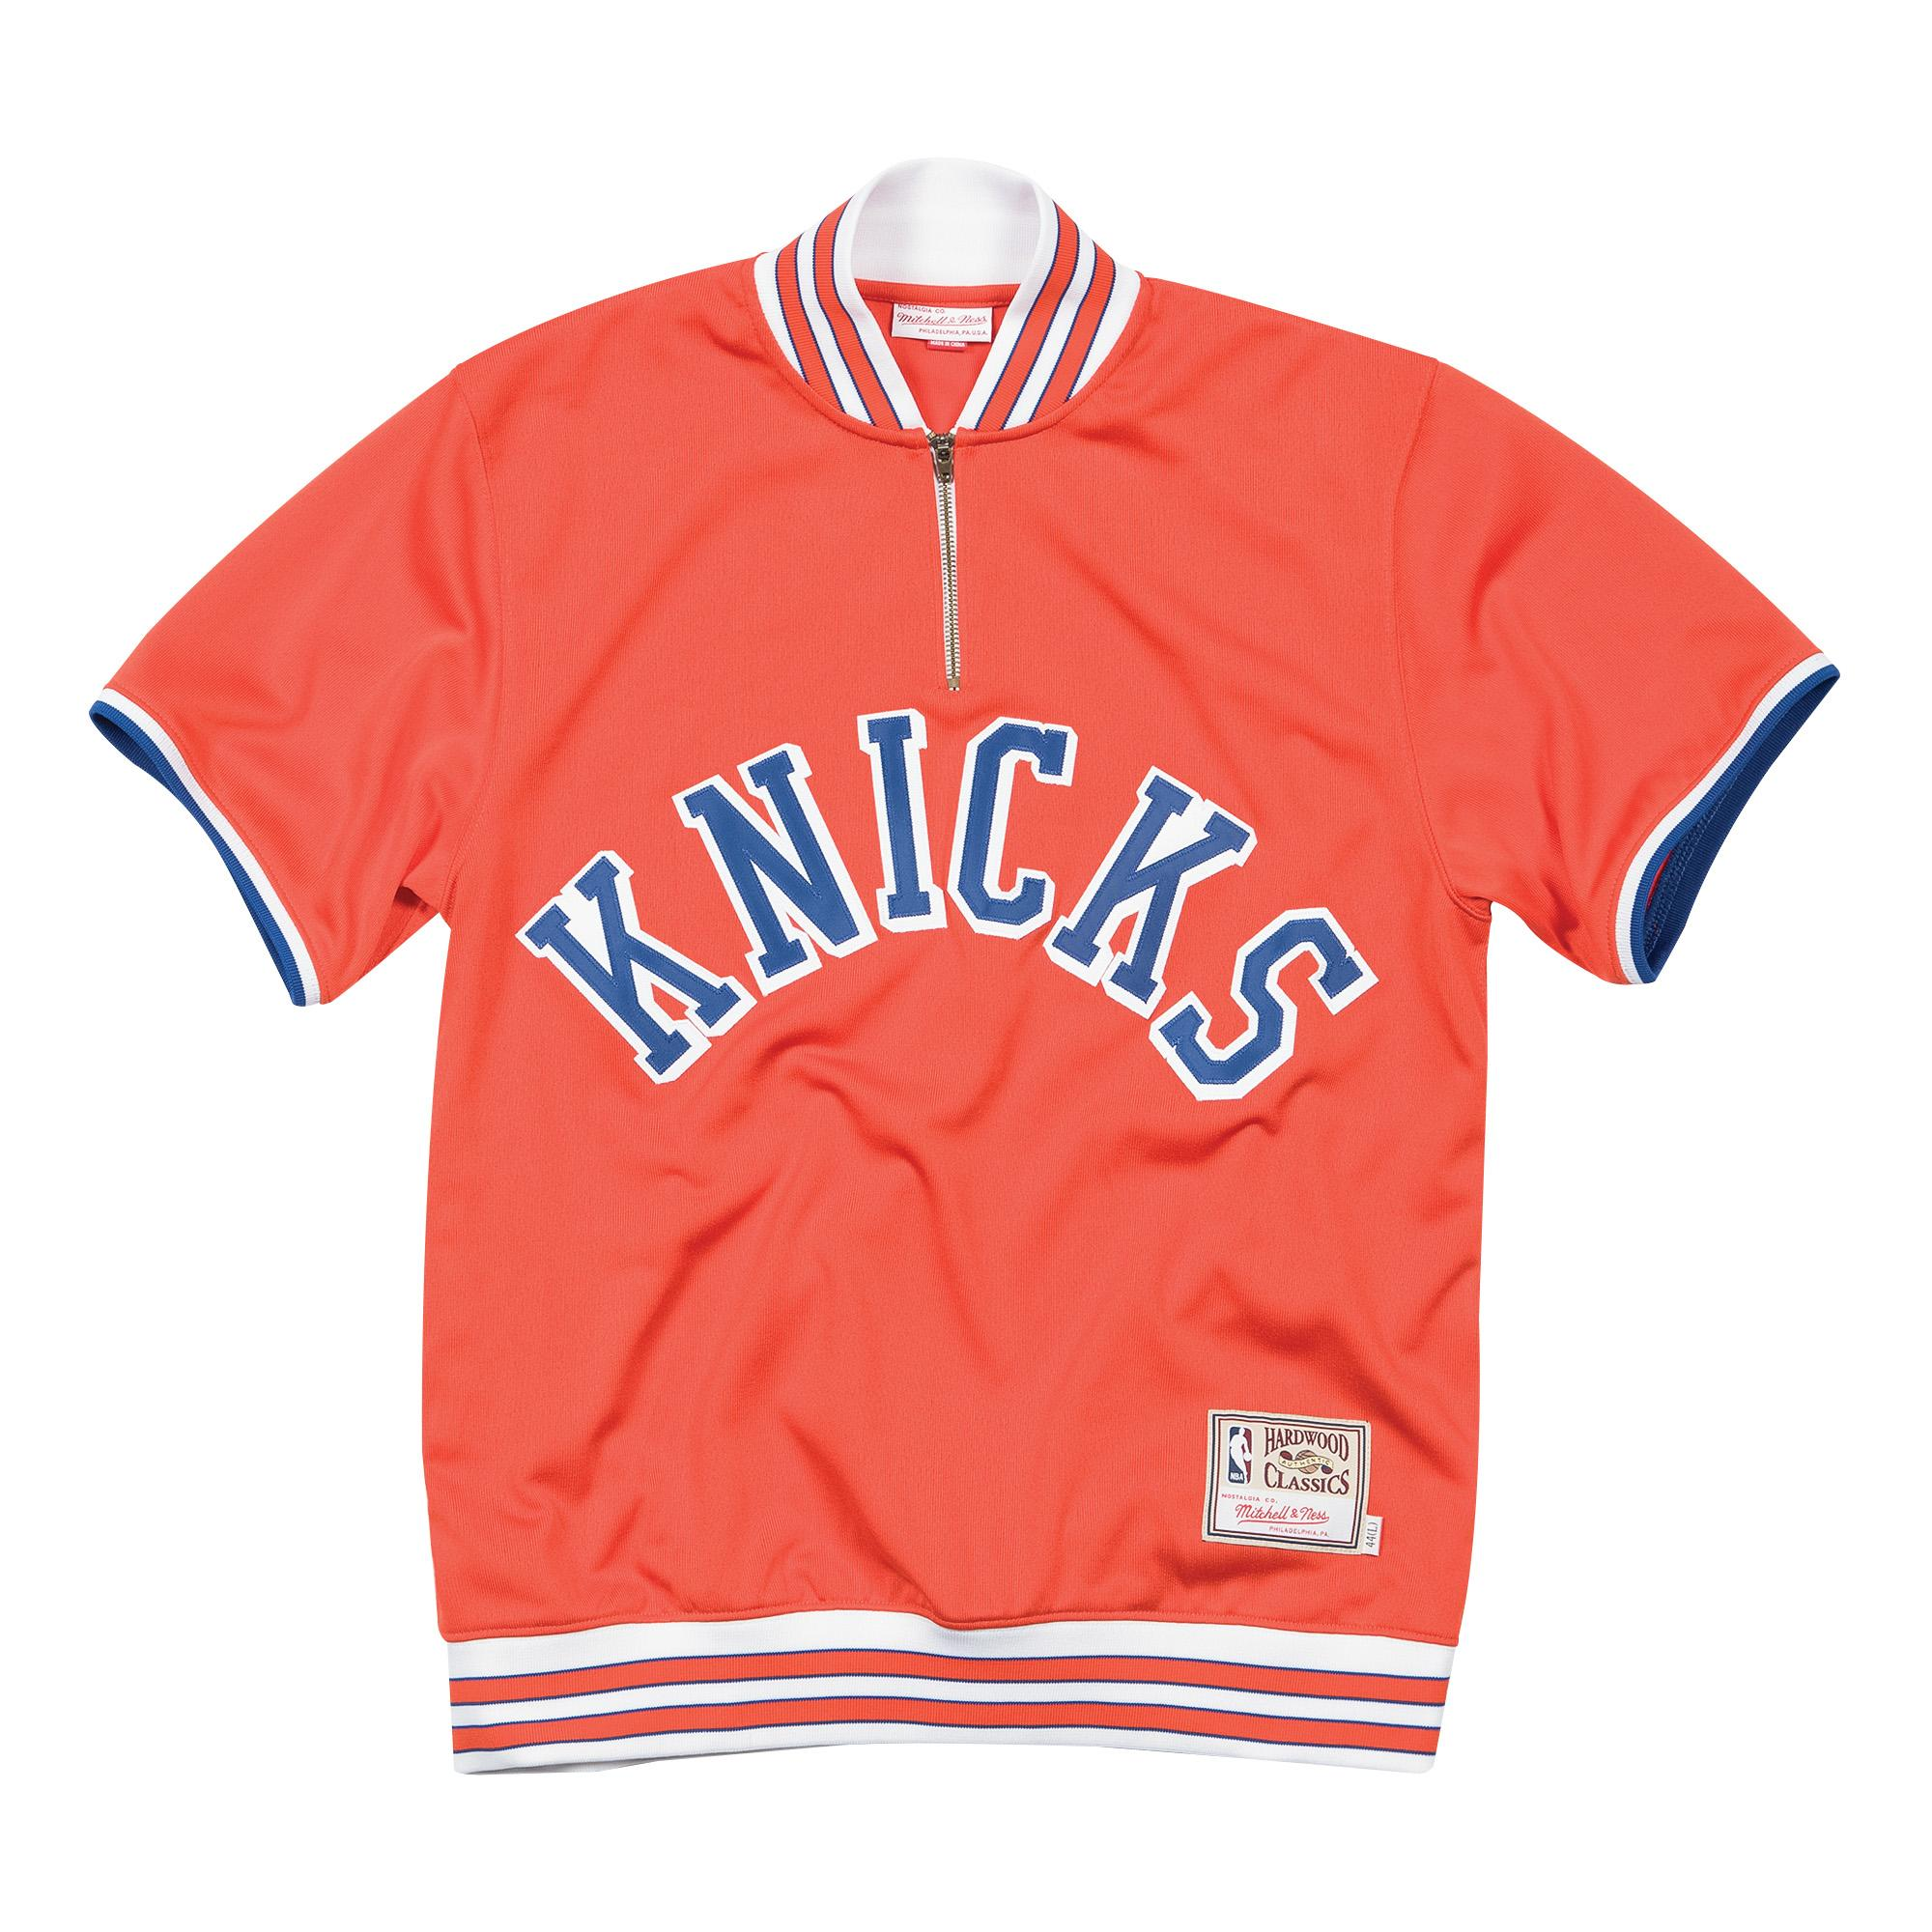 save off 06d55 fcc9c Mitchell & Ness | 1968-69 New York Knicks Authentic Shooting ...